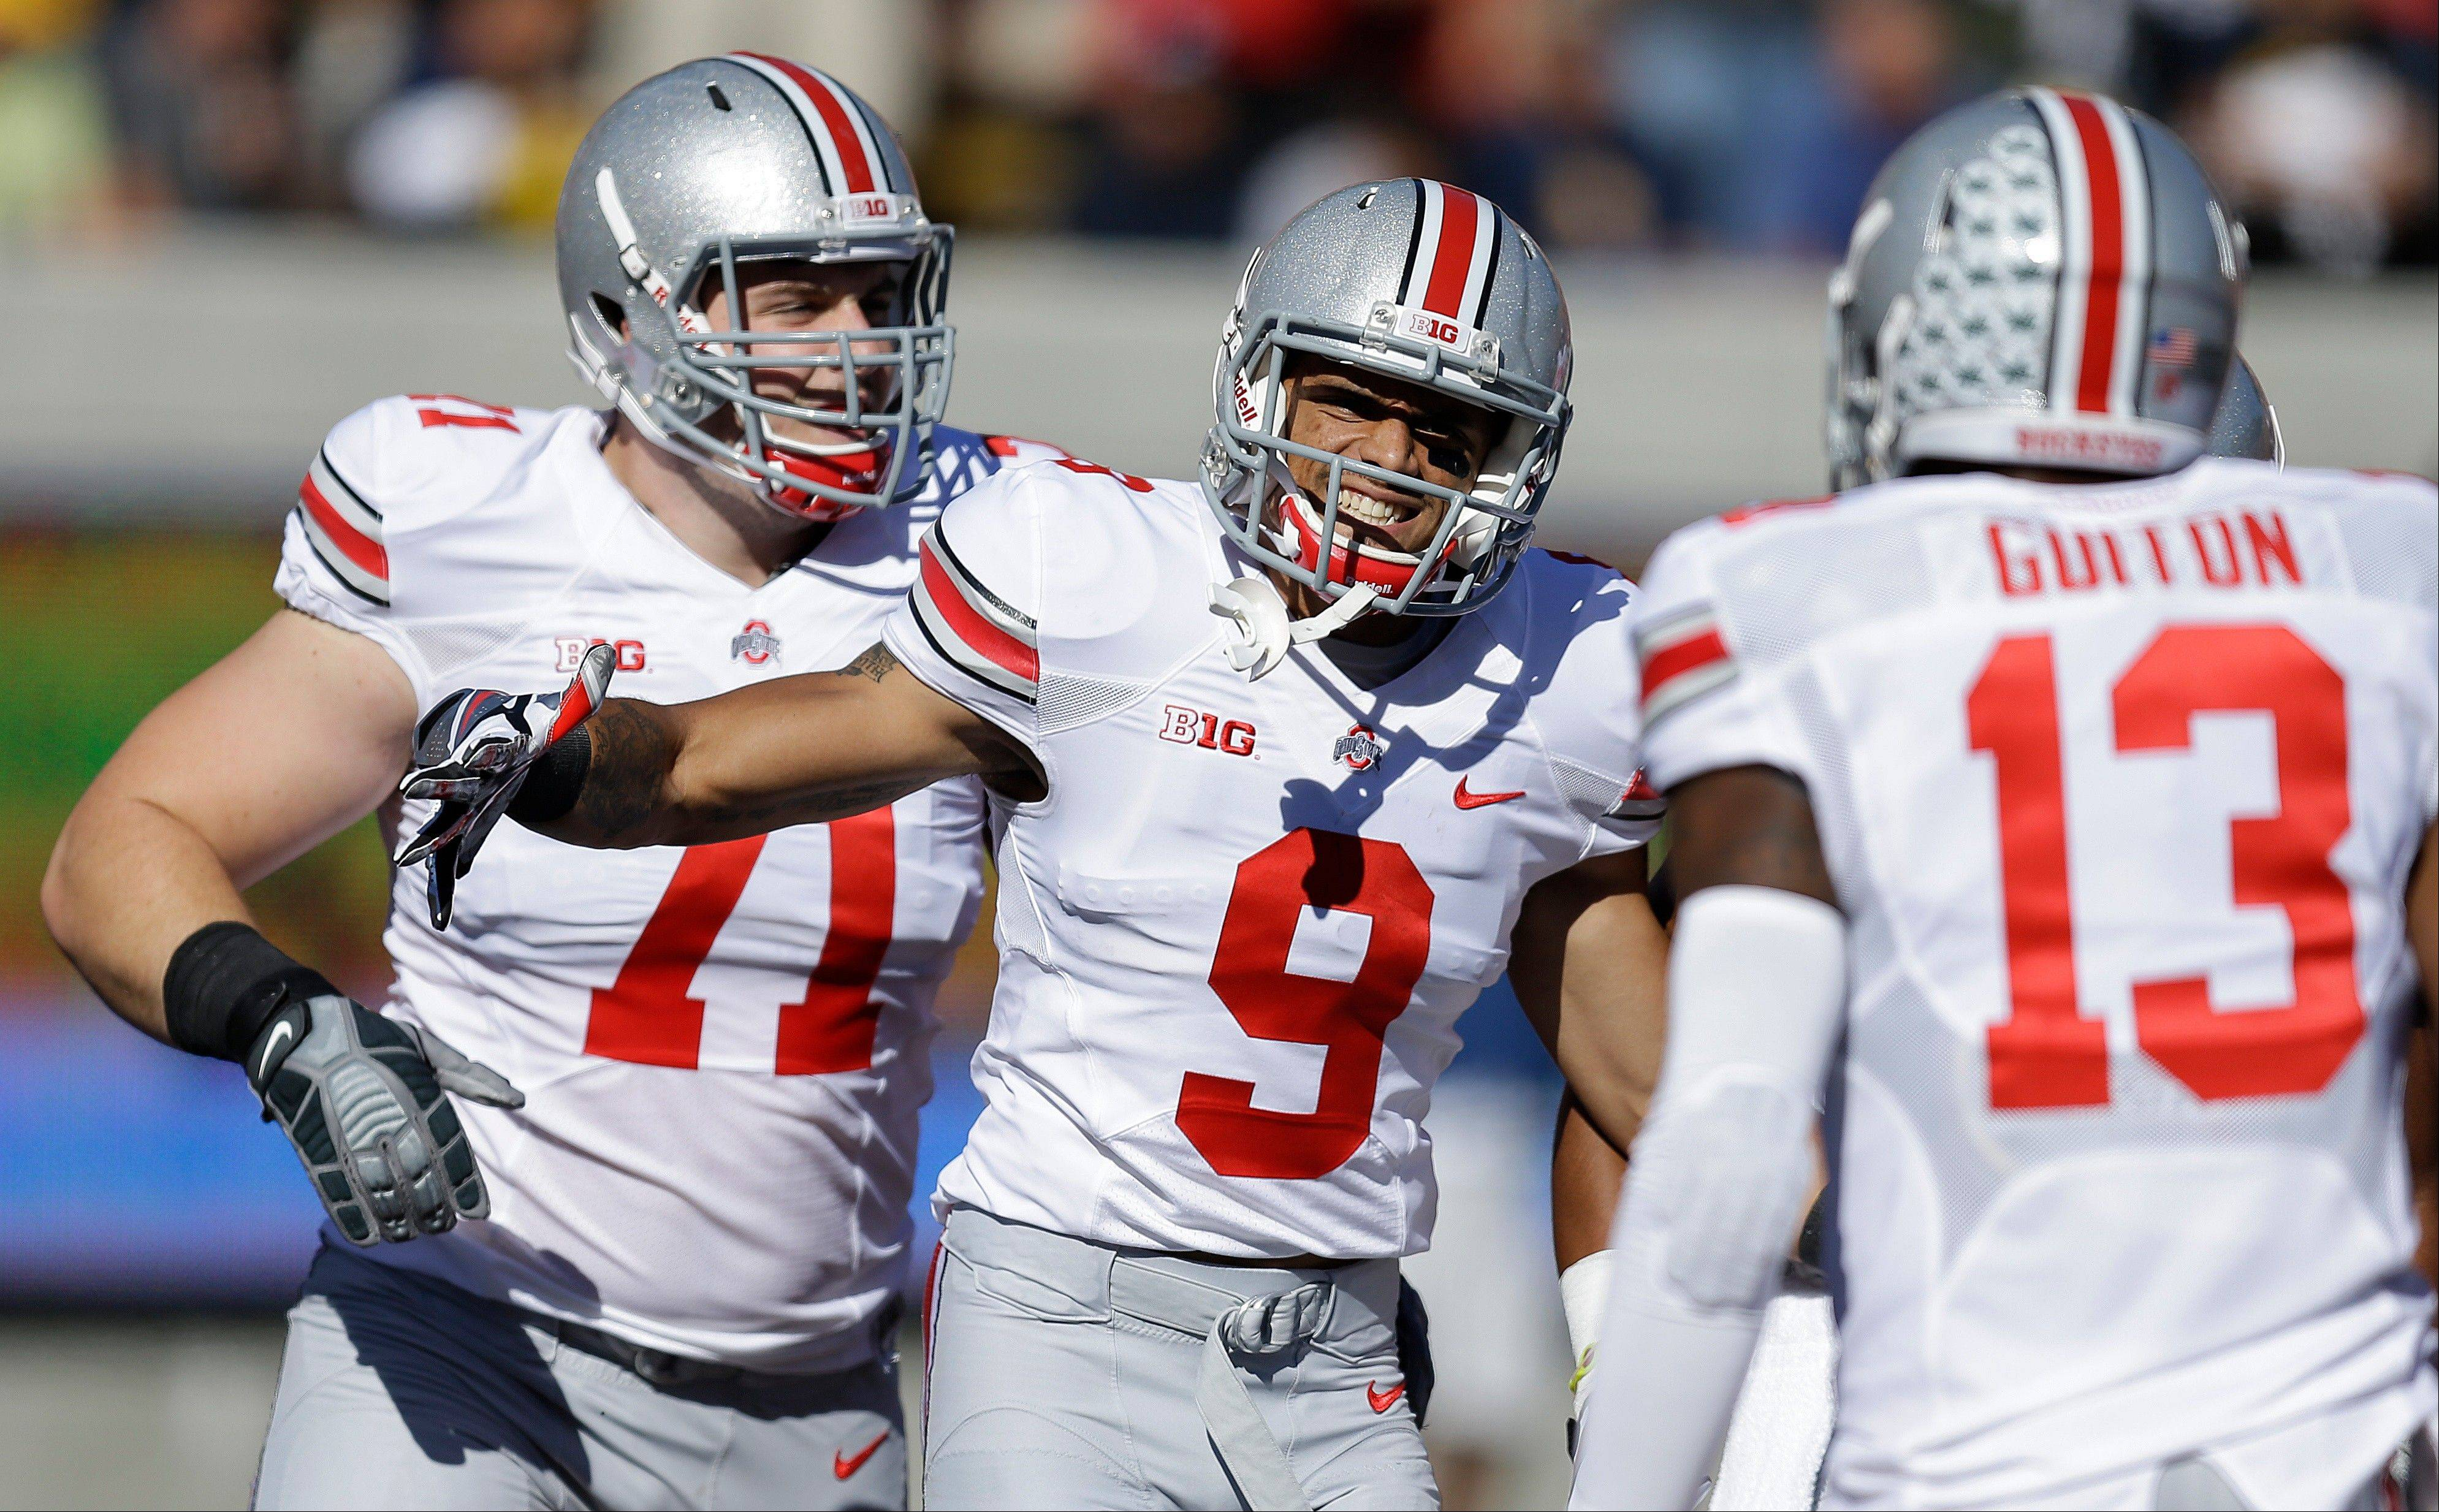 Ohio State's Devin Smith (9) celebrates with quarterback Kenny Guiton (13) and Corey Linsley (71) after Smith scored a touchdown against California during the first quarter of an NCAA college football game, Saturday, Sept. 14, 2013, in Berkeley, Calif.